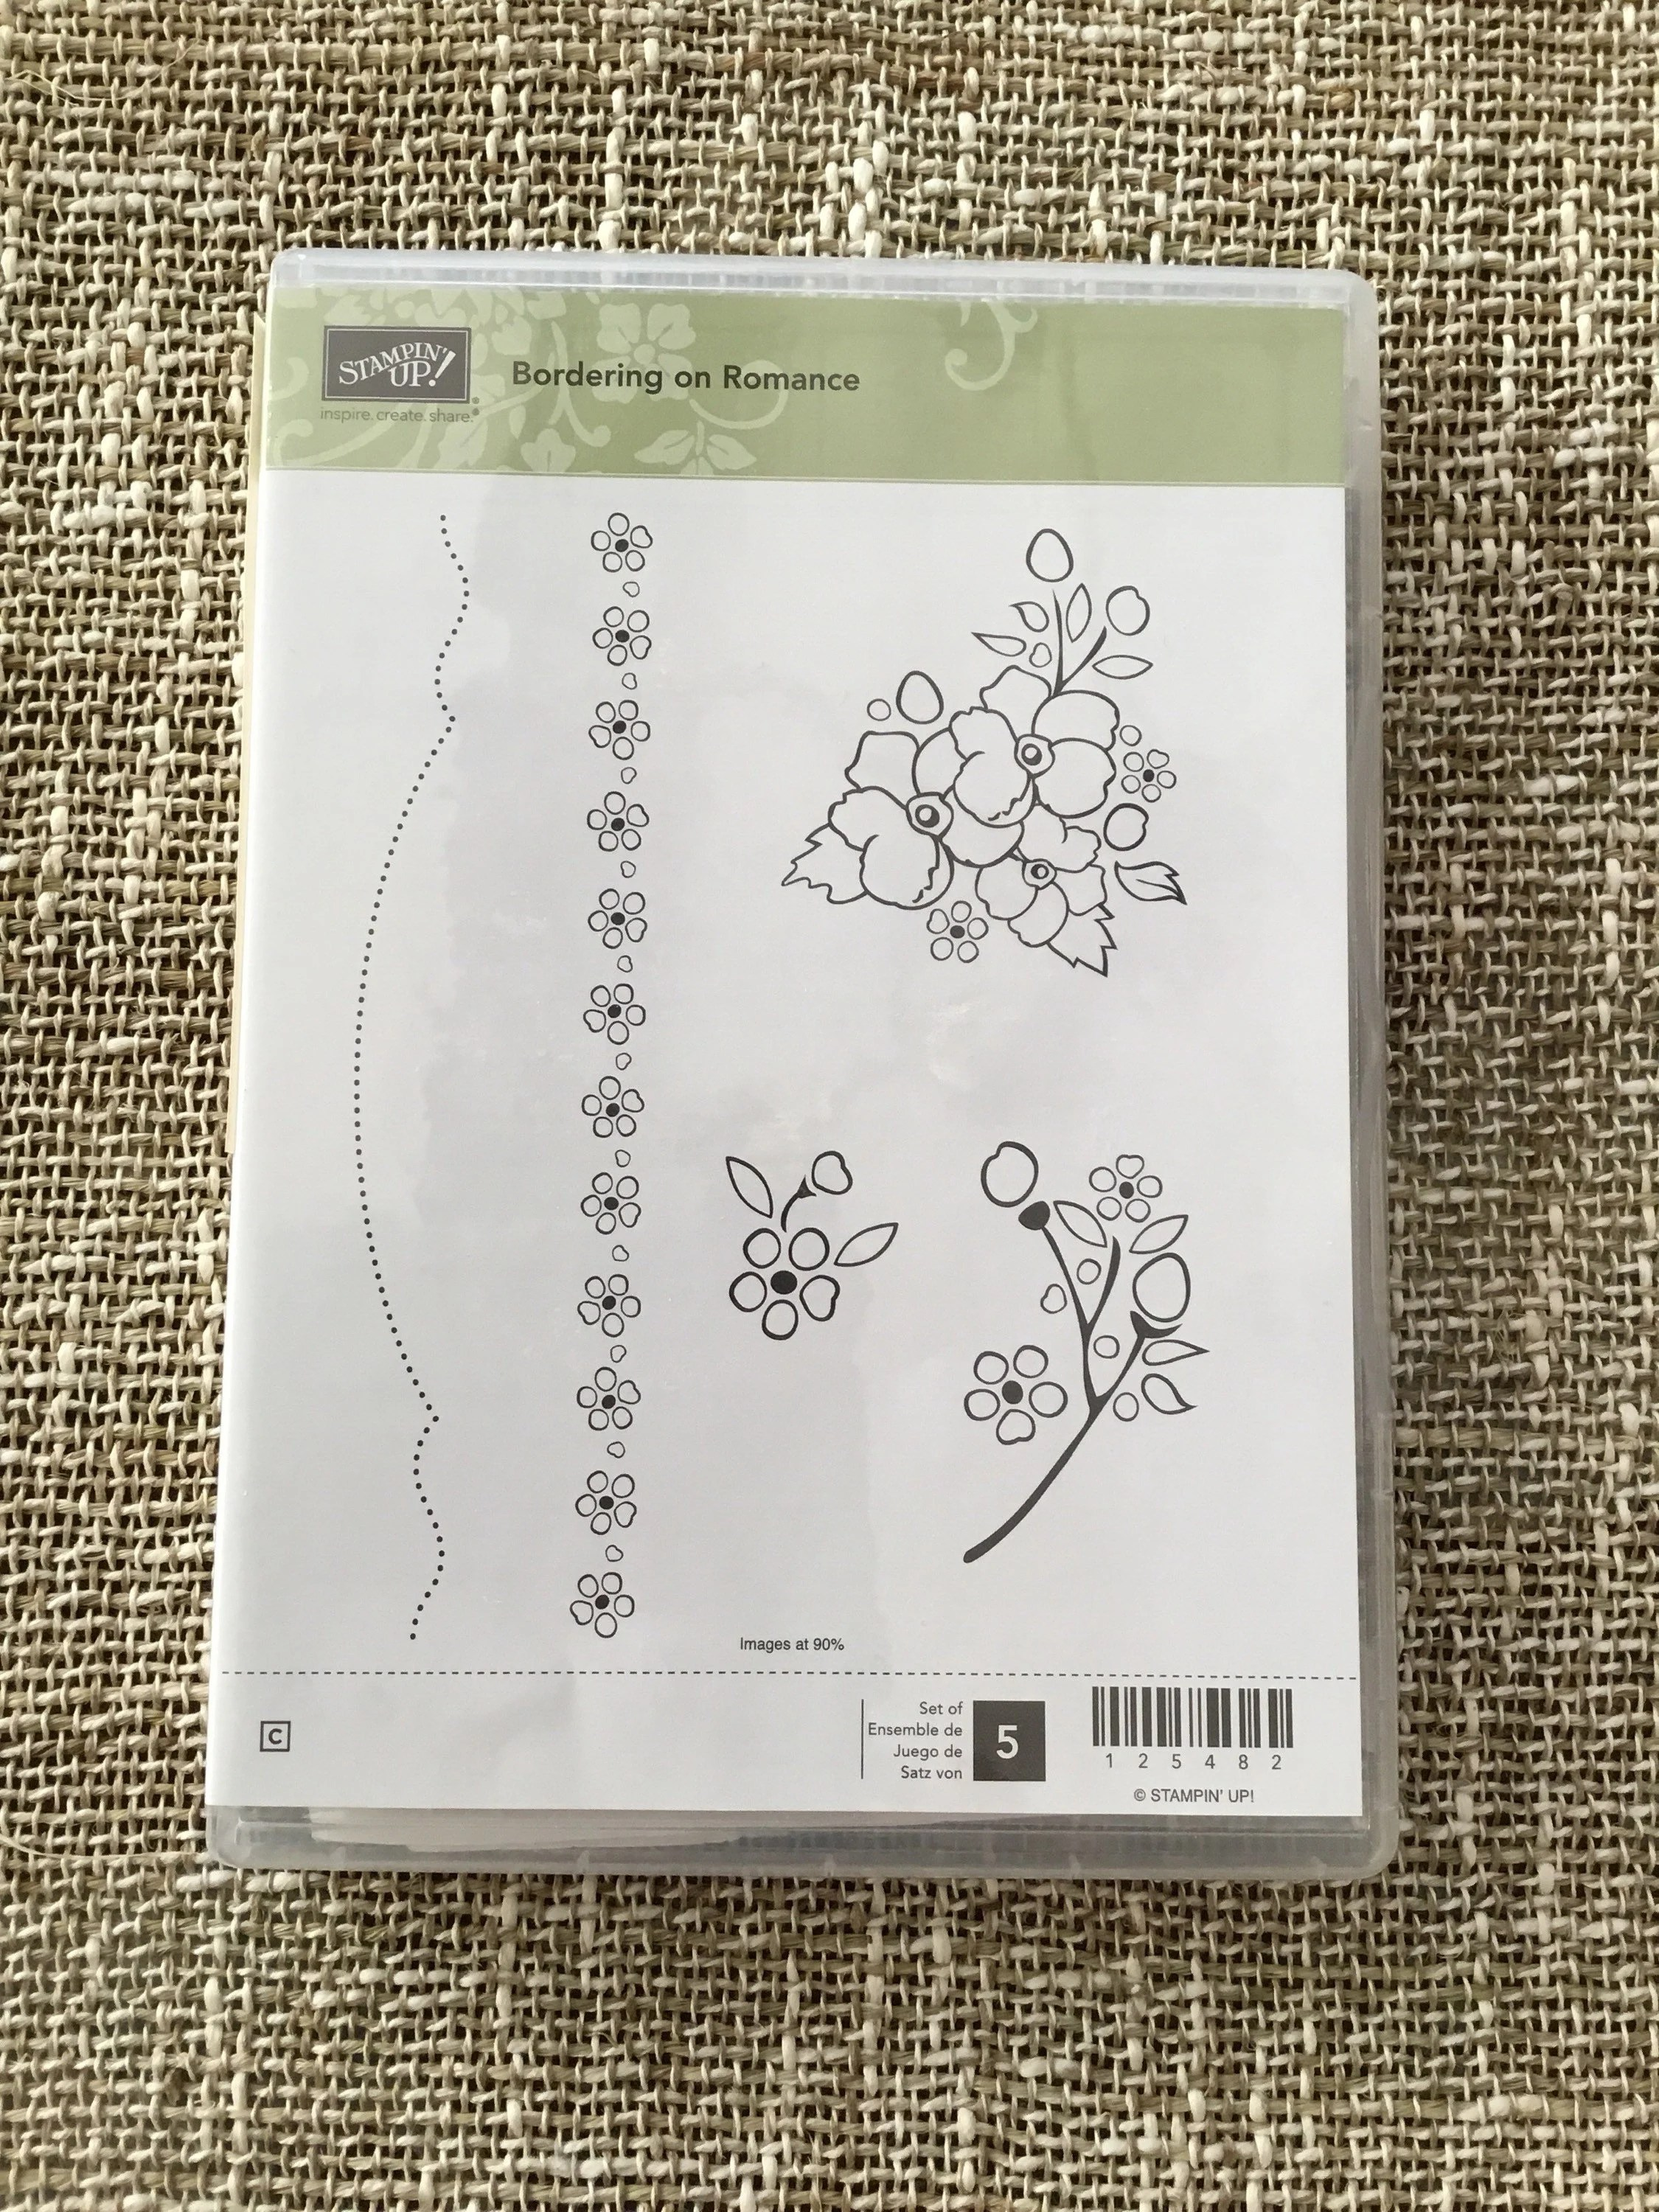 Stampin Up Karten Für Männer Stampin Up Bordering On Romance Rubber Stamp Set For Clear Mounts Unused Card Making Scrapbooking Flowers Borders Dainty